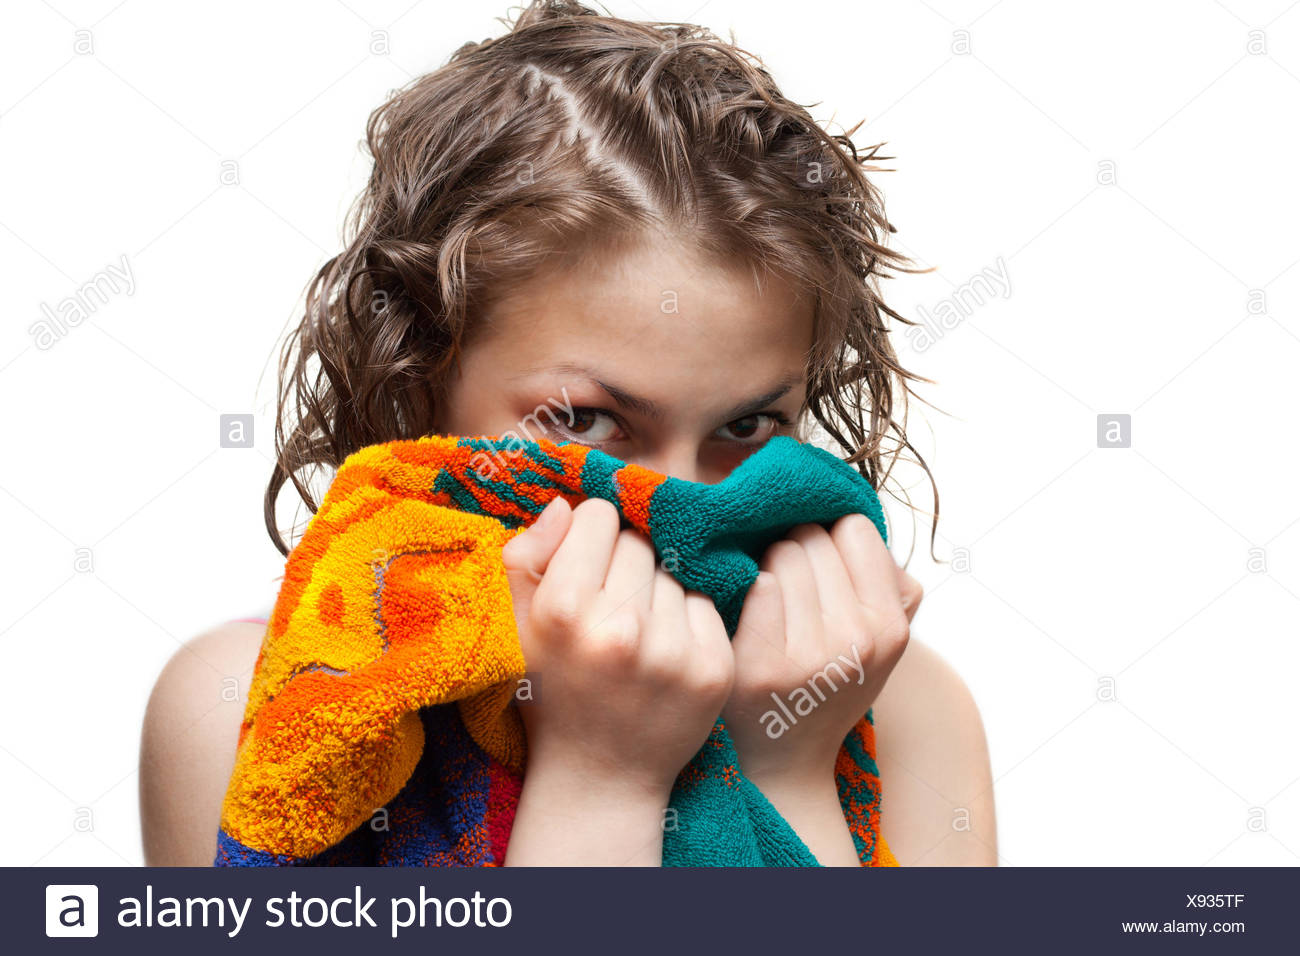 Making look younger girl with wet hair - Stock Image